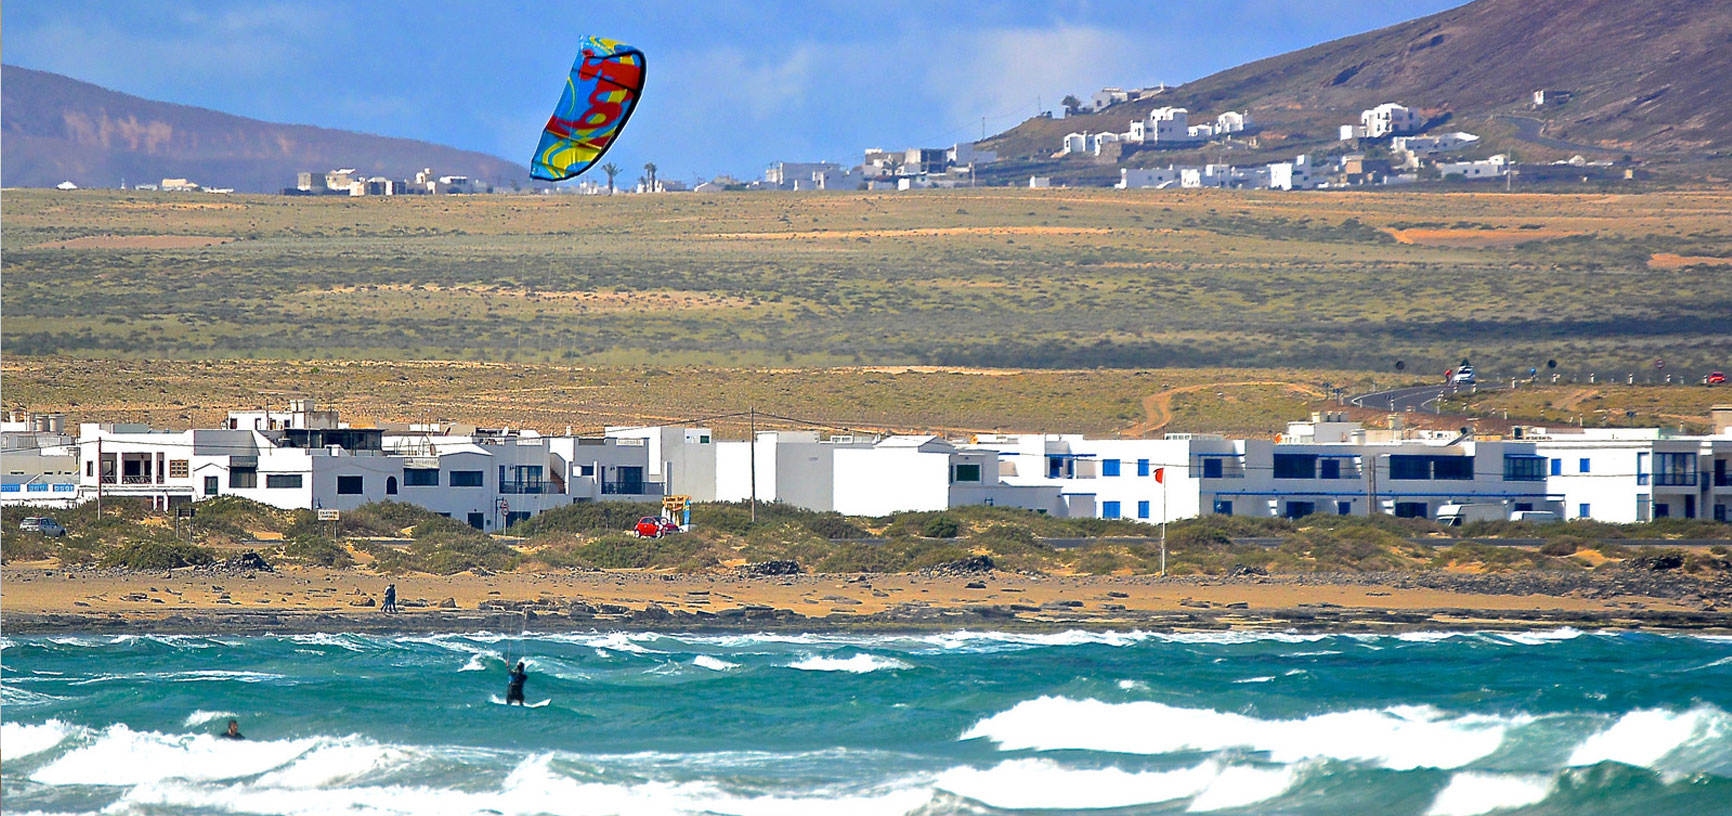 Image Program Surfing + KiteSurfing Camp